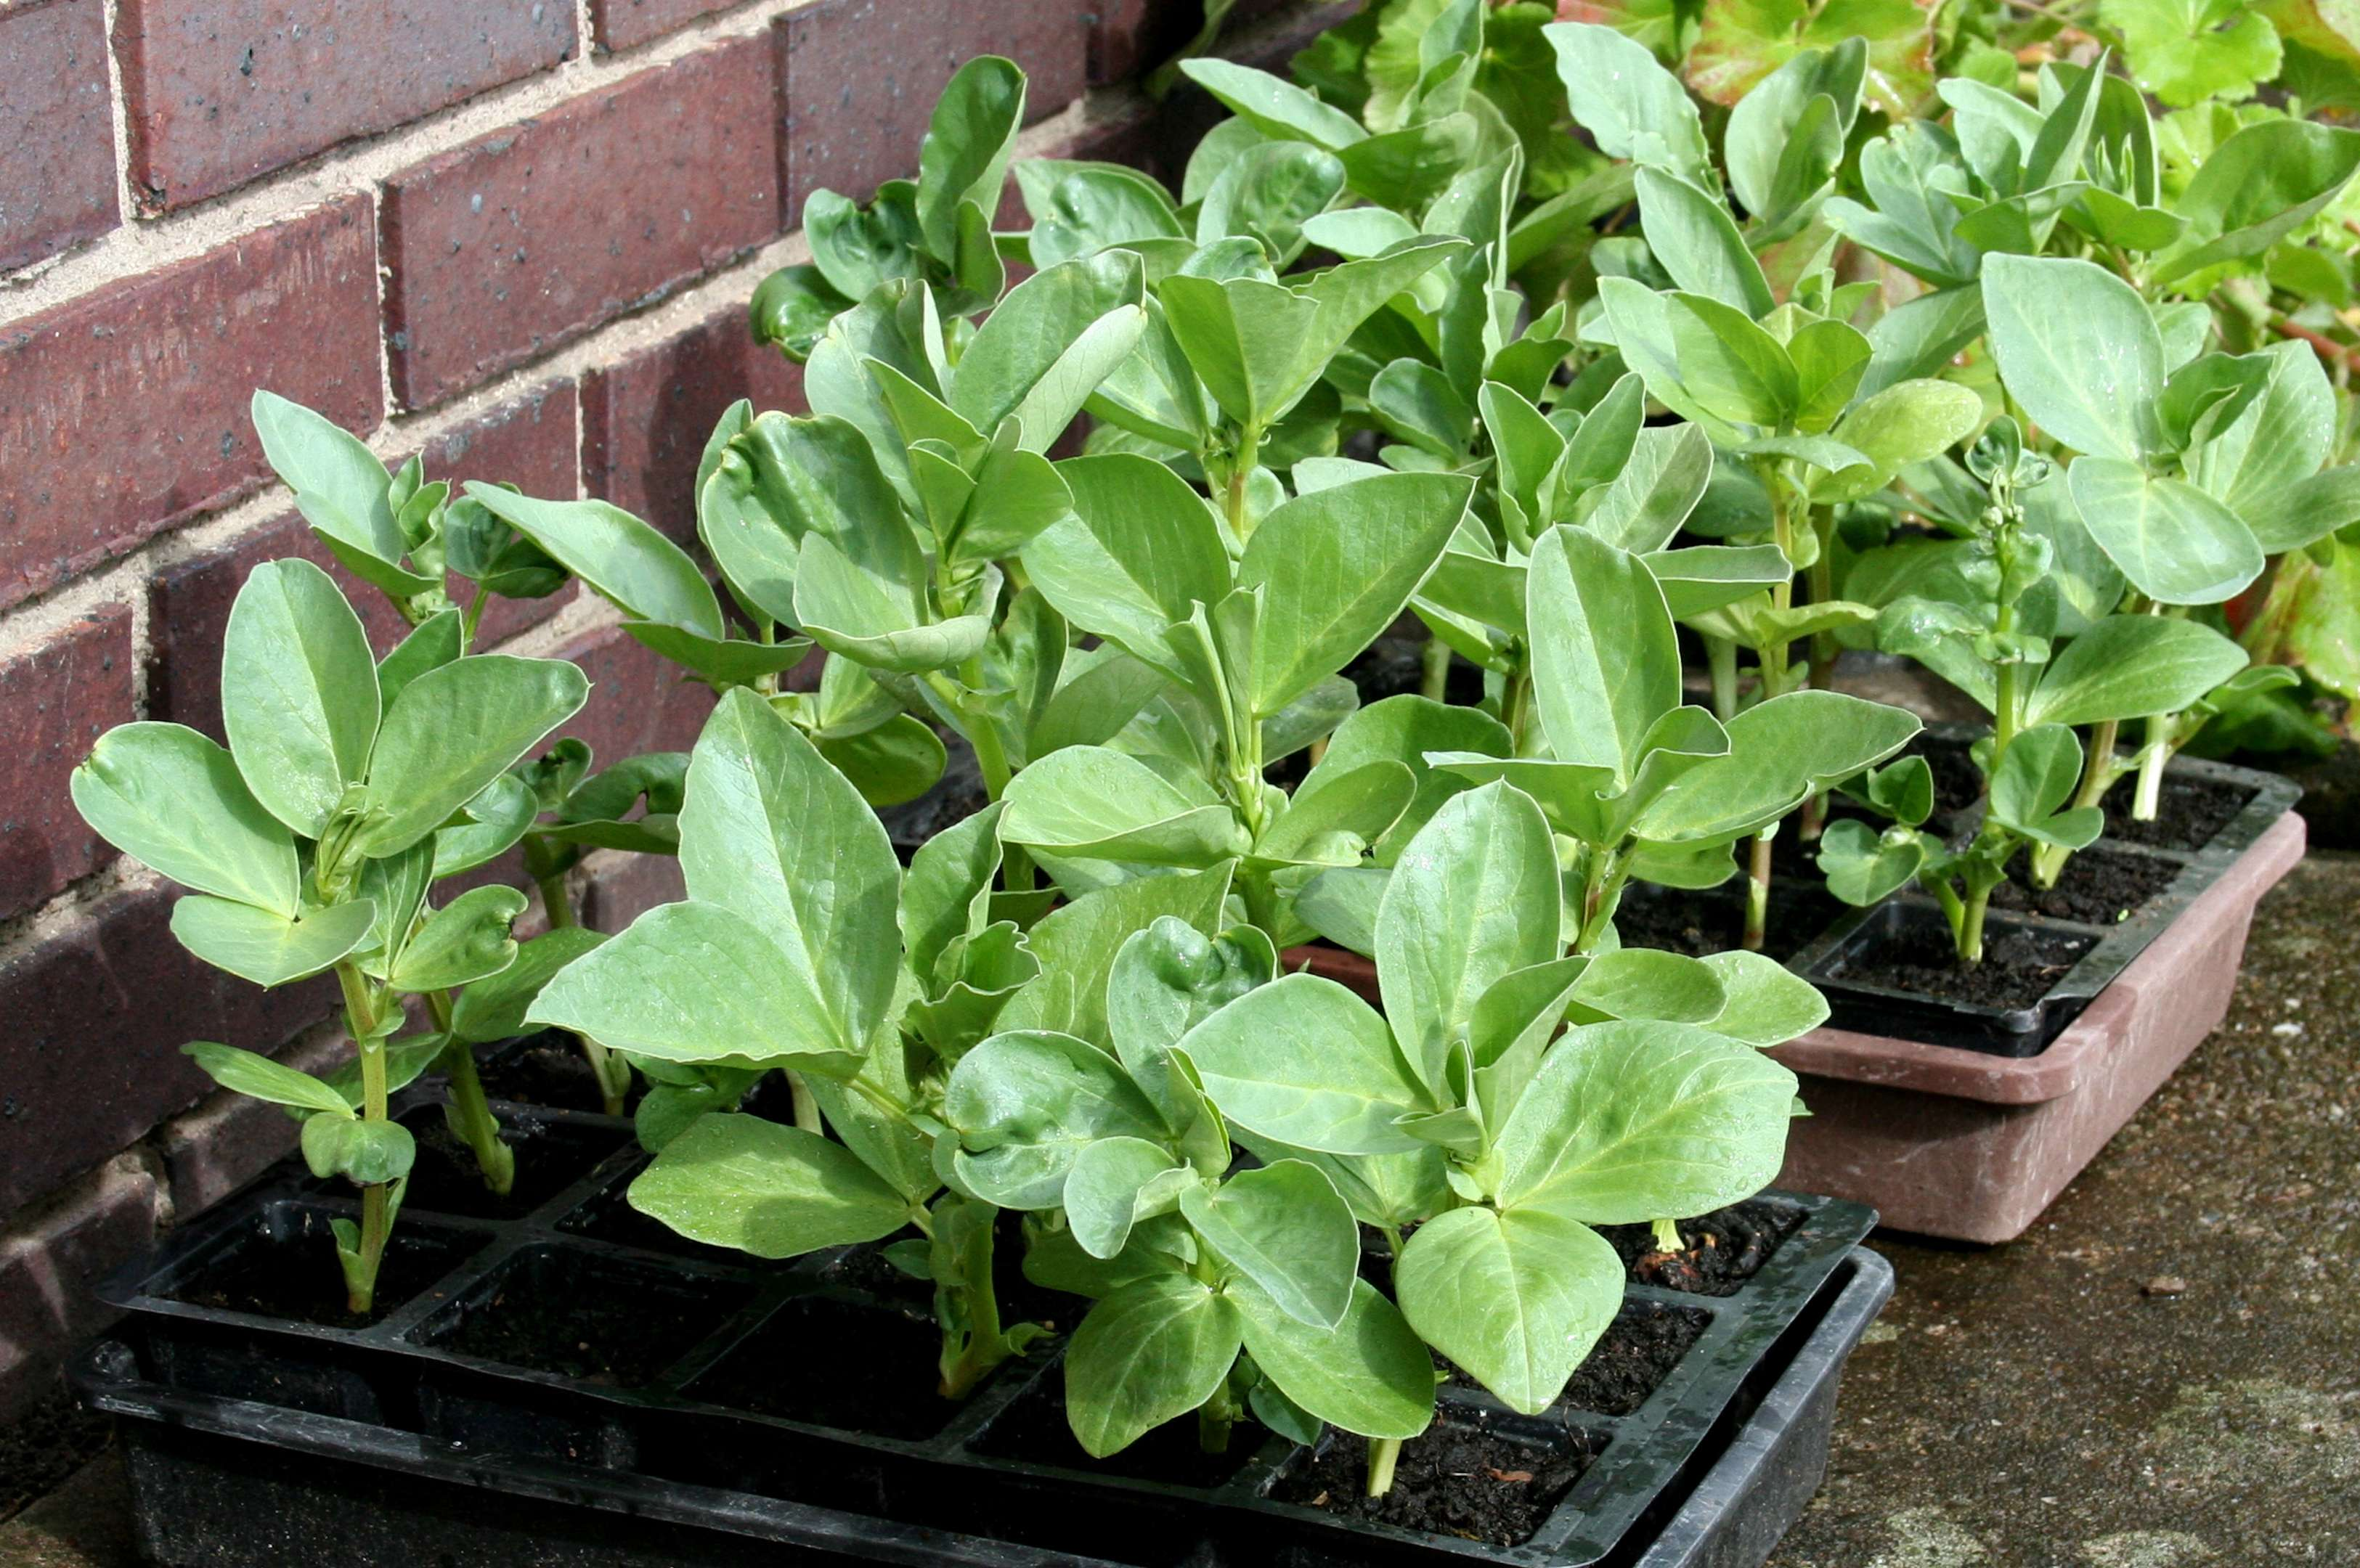 Broad beans ready for planting.